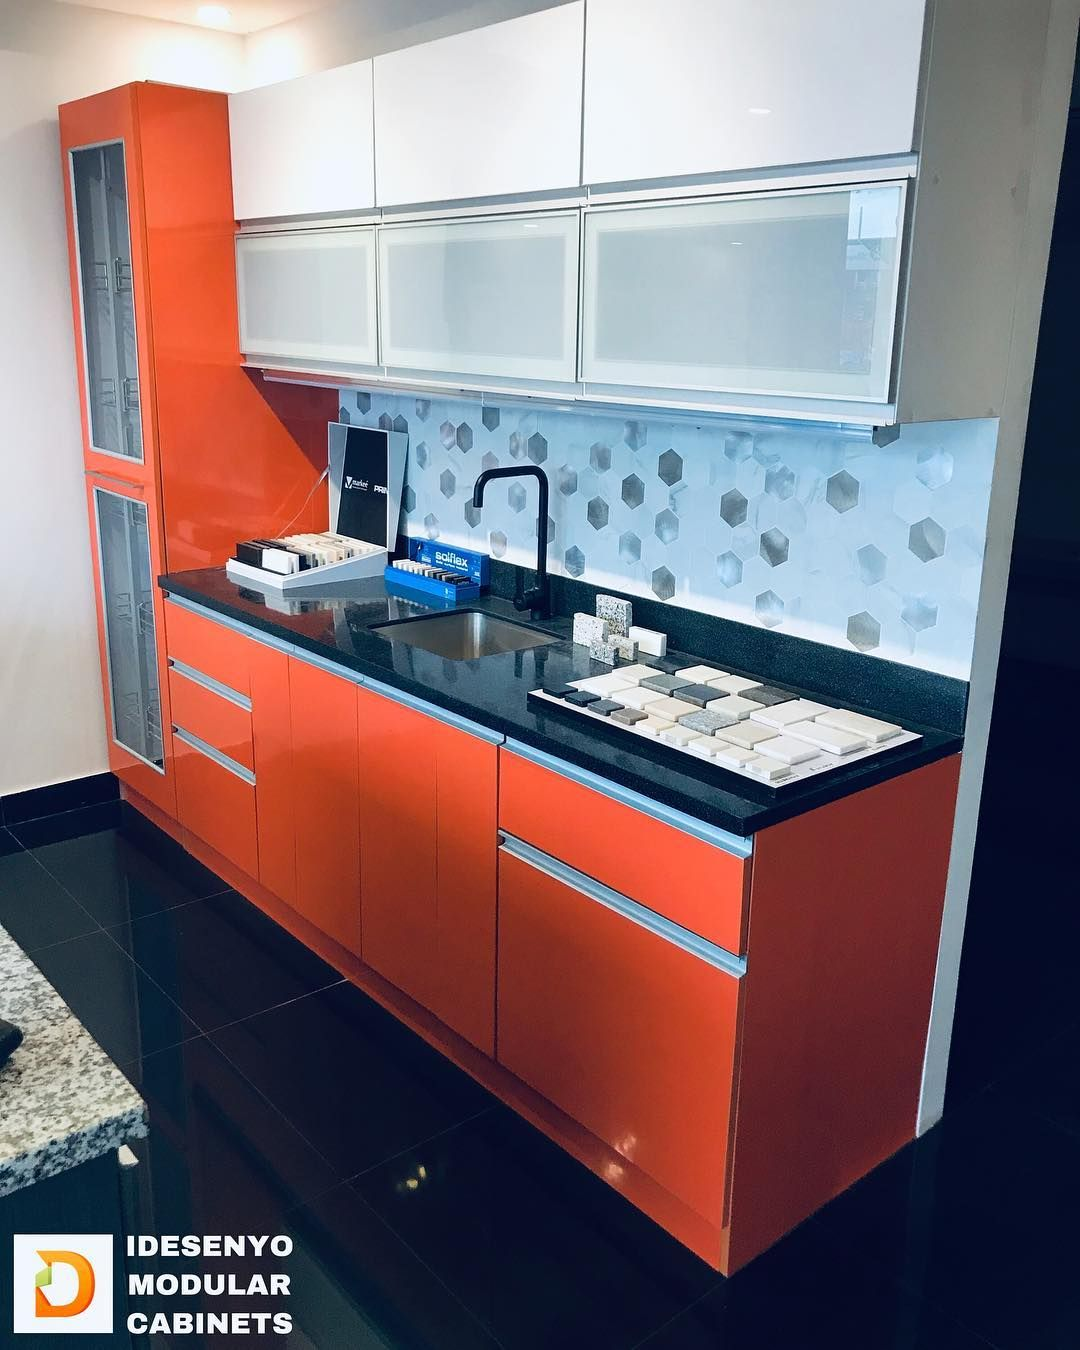 For Sale Our Kitchen Cabinet Display In Our Showroom Is Now For Sale Please See Details Below For Your Referen Modular Cabinets Kitchen Cabinets Kitchen